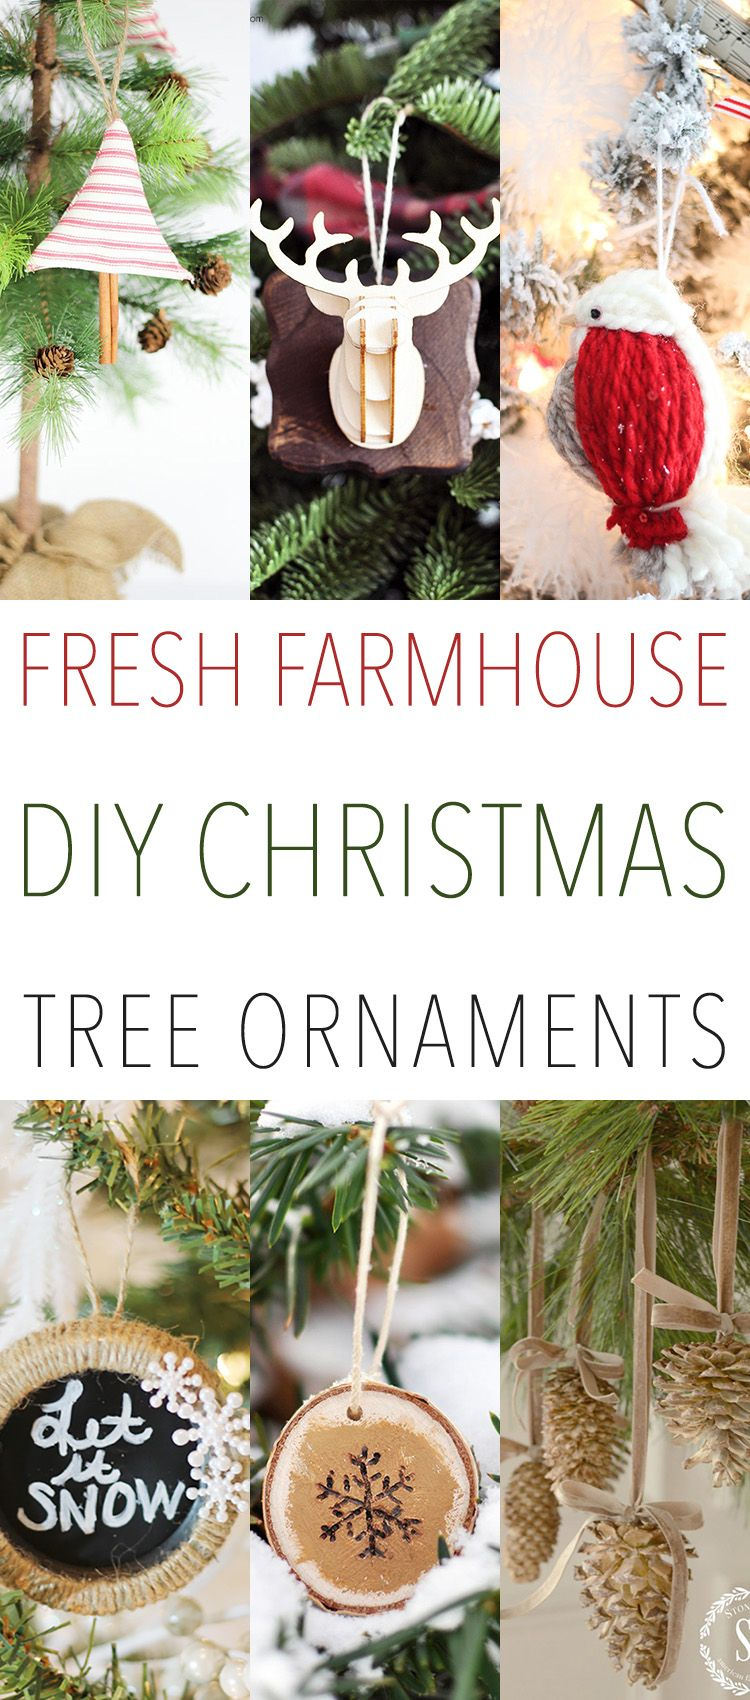 Today we have yet another collection of Fresh Farmhouse DIY Christmas Tree Ornaments for you. Each and every one of these little treasure will look Farmtastic on your shining ….happy tree! They also make incredible gift toppers too! So if you love Burlap…Grain Sacks…Chalkboard…Mason Jars and more…then you are going to enjoy these! So sit …